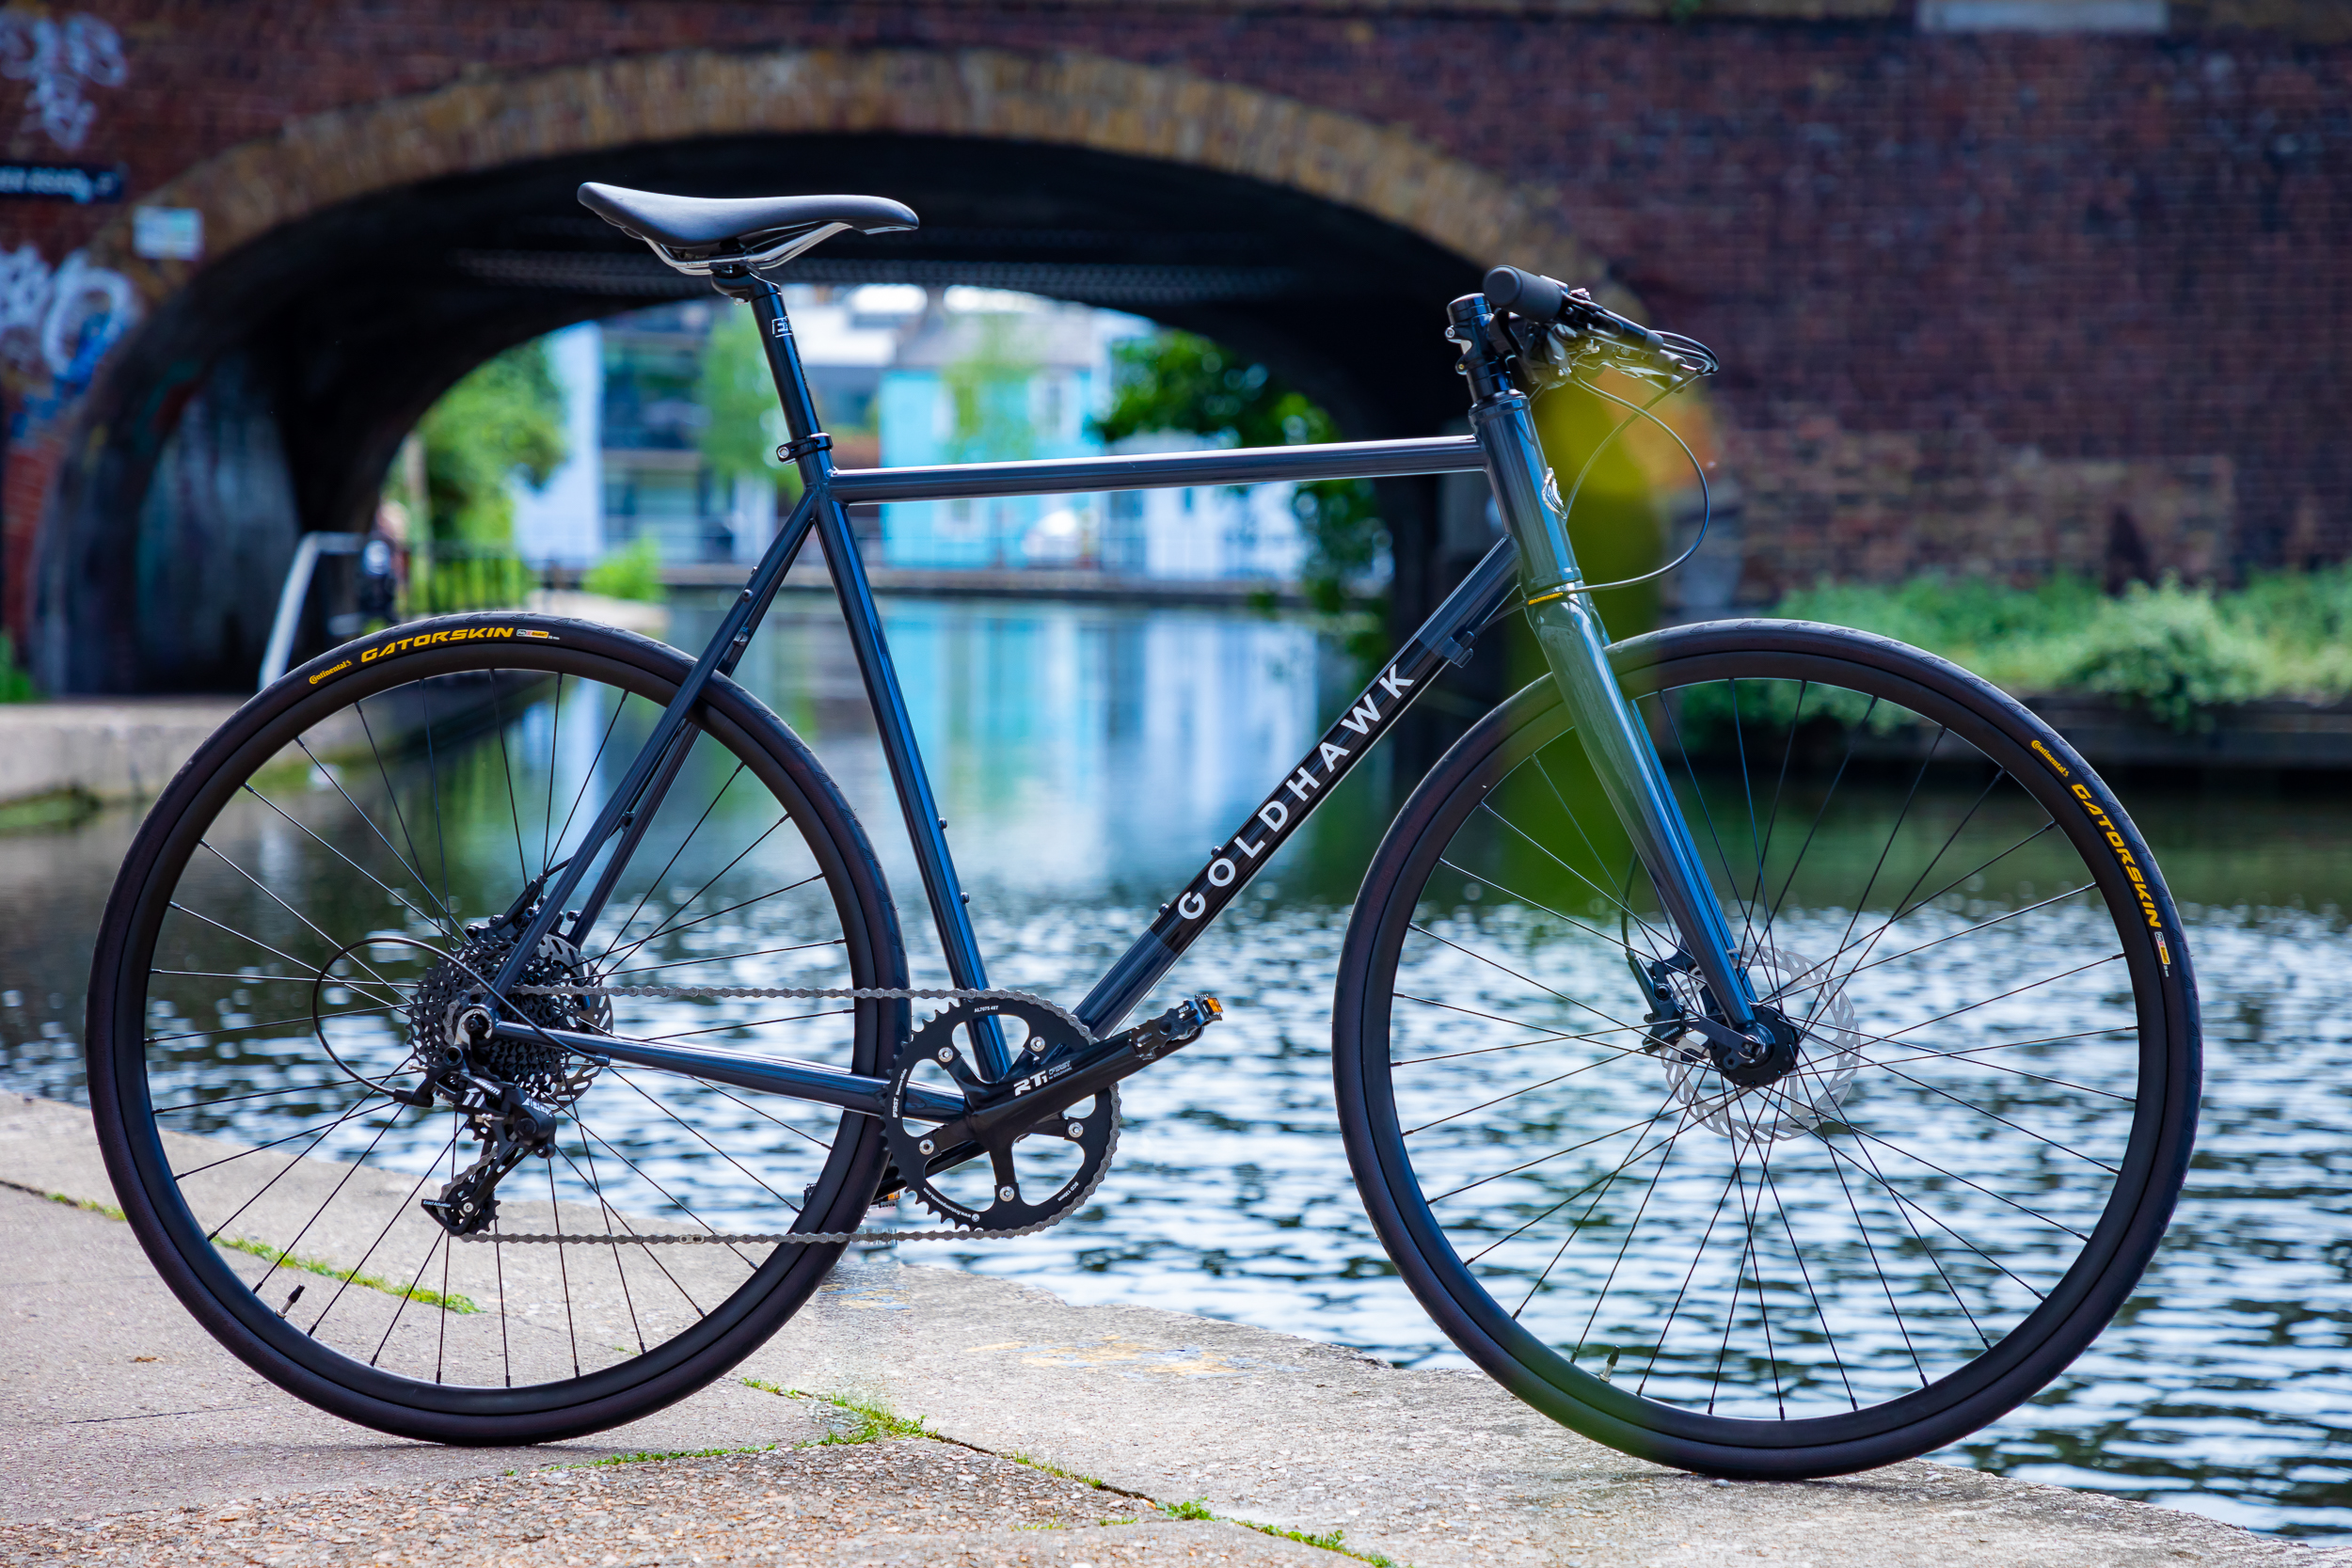 Hand made Reynolds steel frame with carbon fork. Hand built in Camden, London